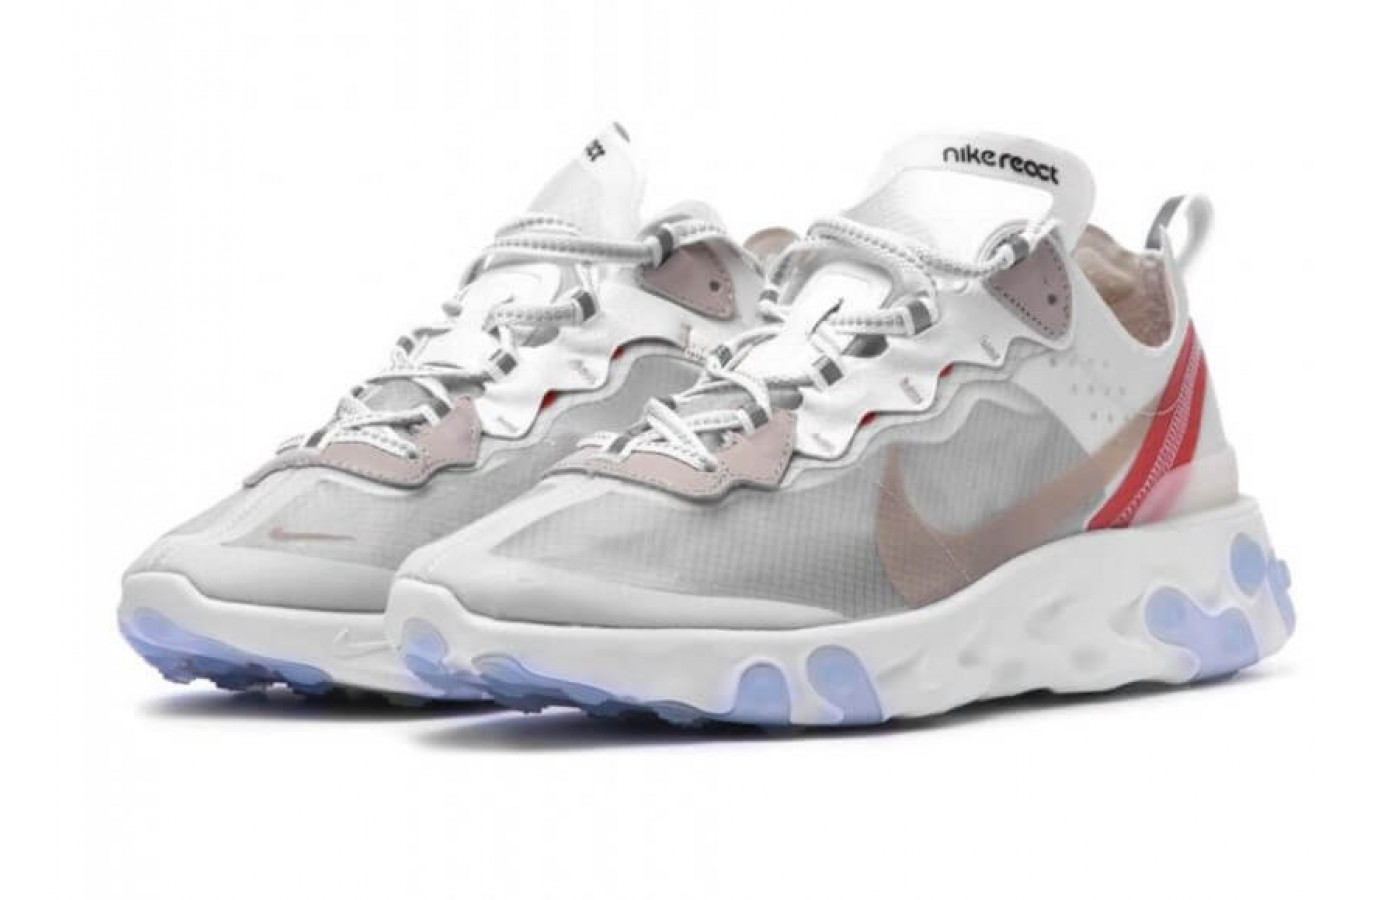 An angled view of the Nike React Element 87.